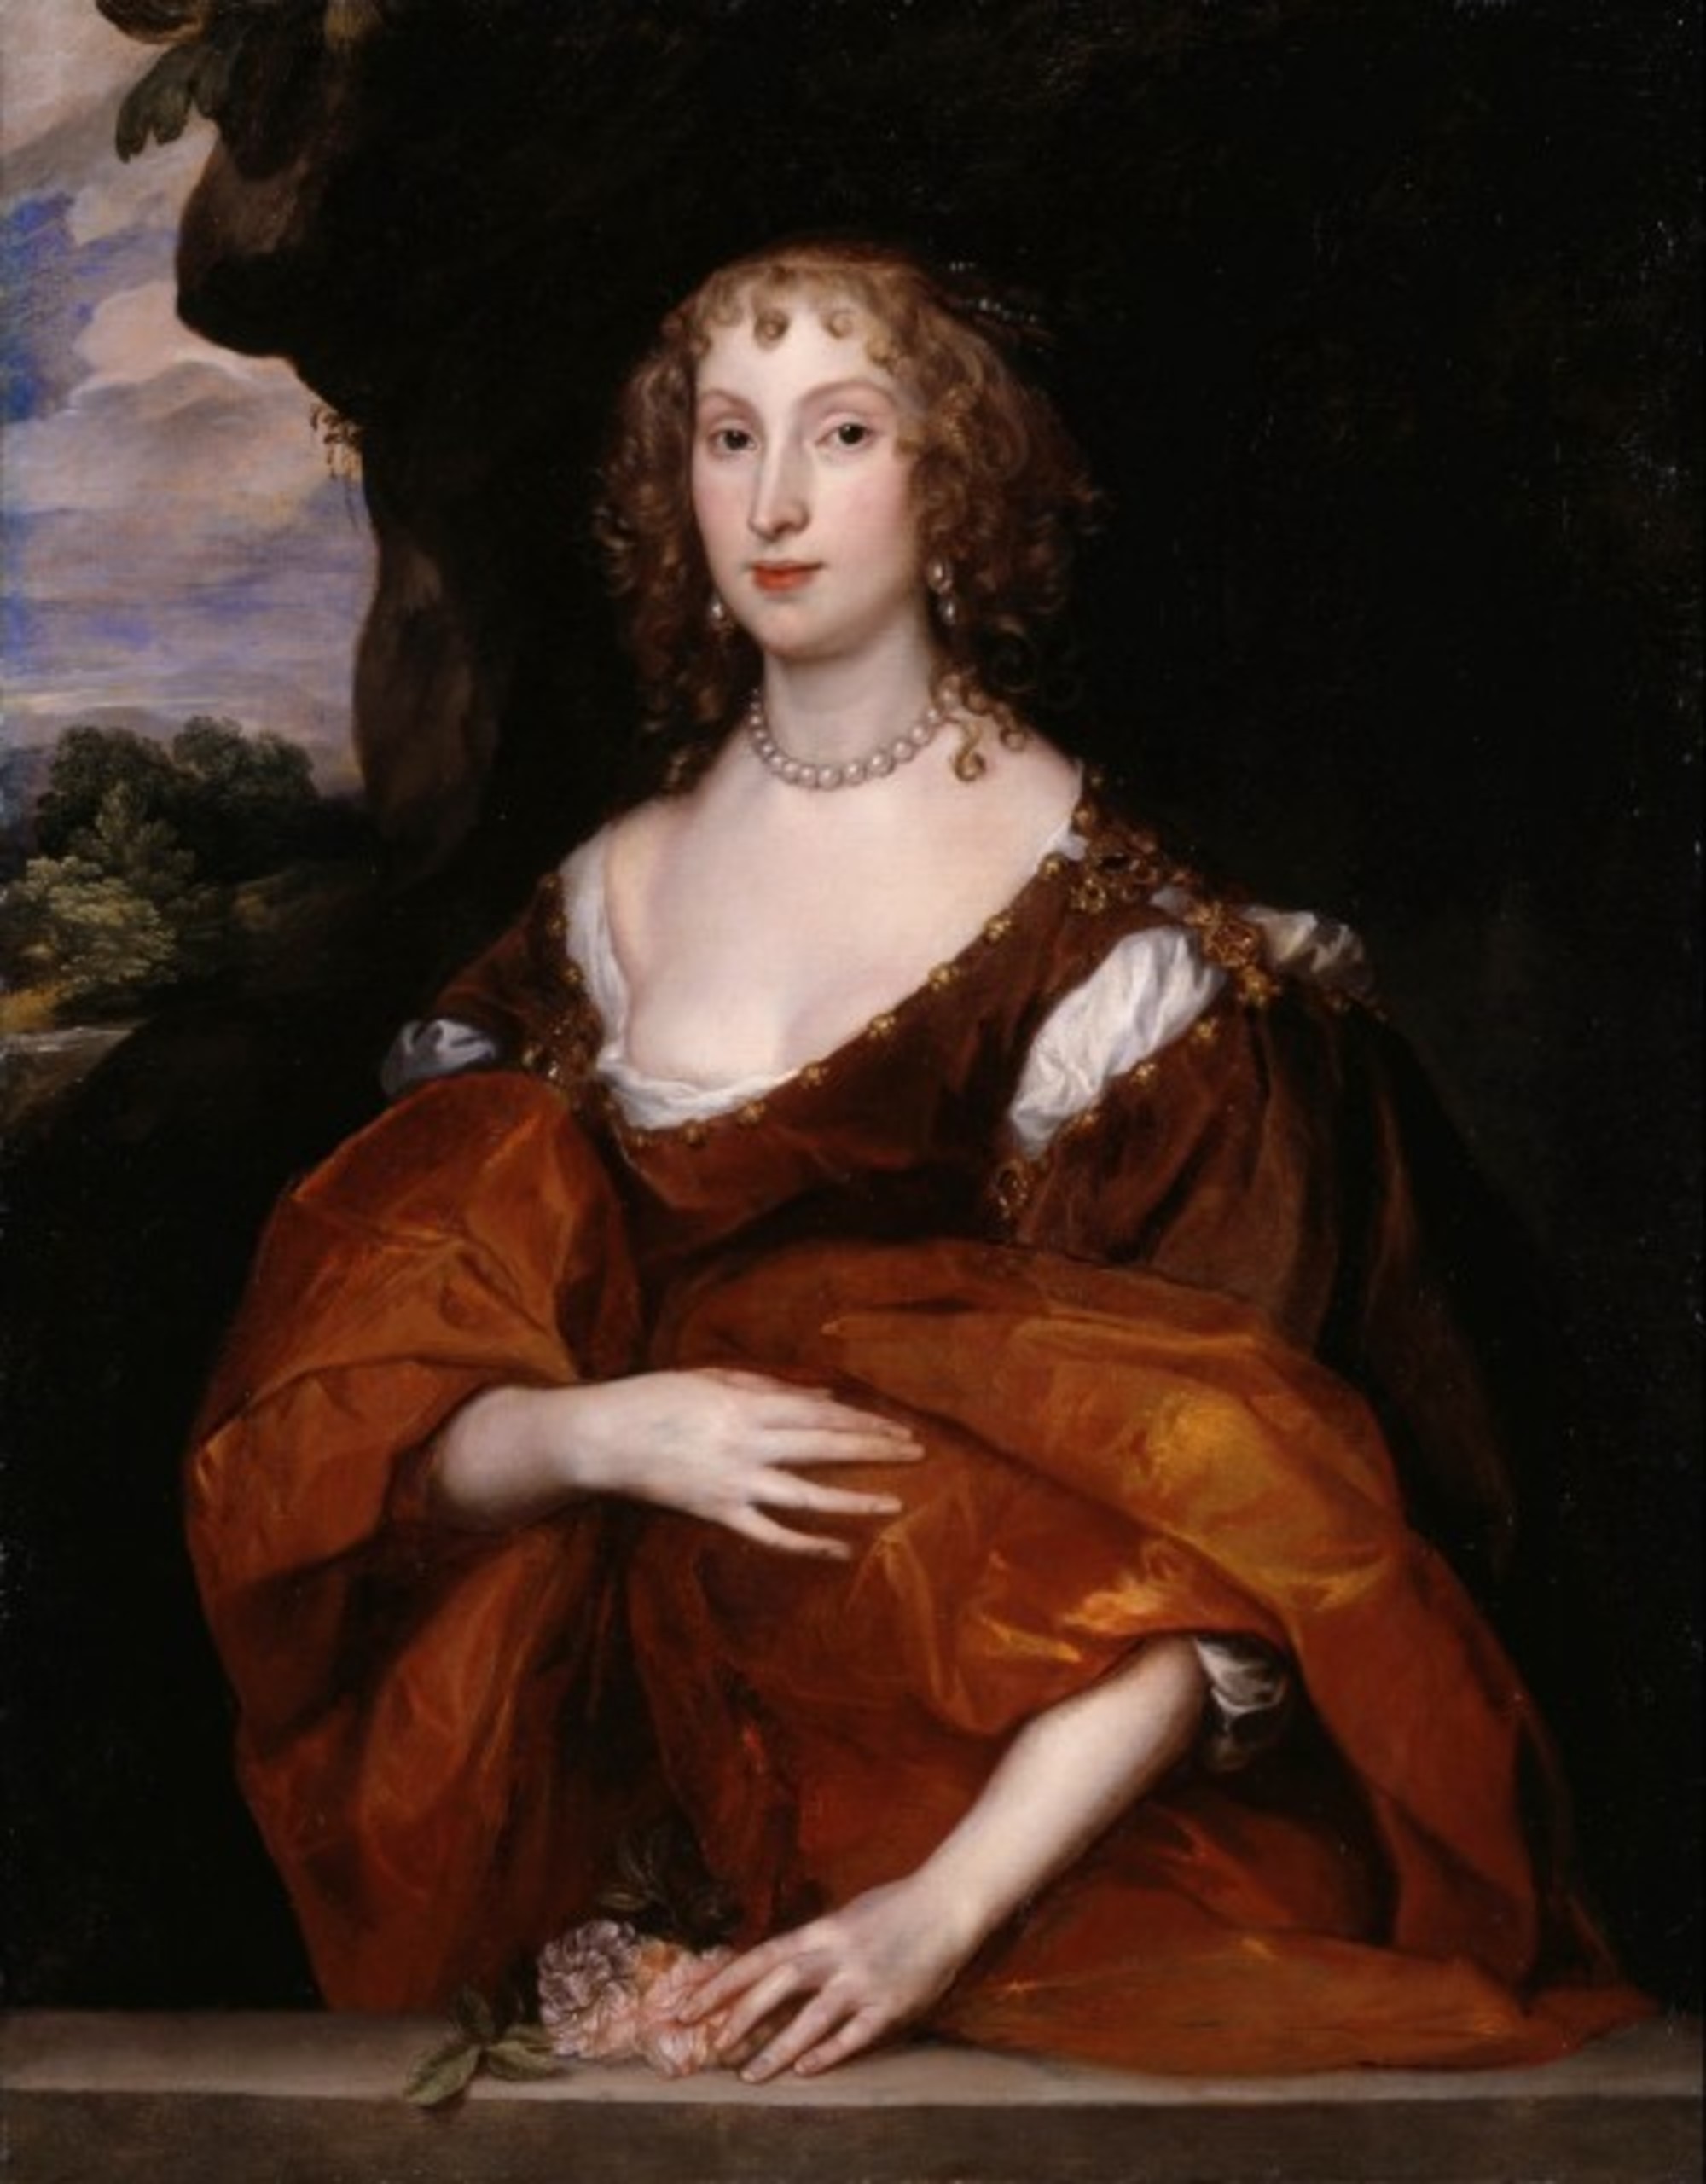 Sir-Anthony-Van-Dyck---Portrait-of-Mary-Hill-Lady-Killigrew-Tate-Britain.jpg